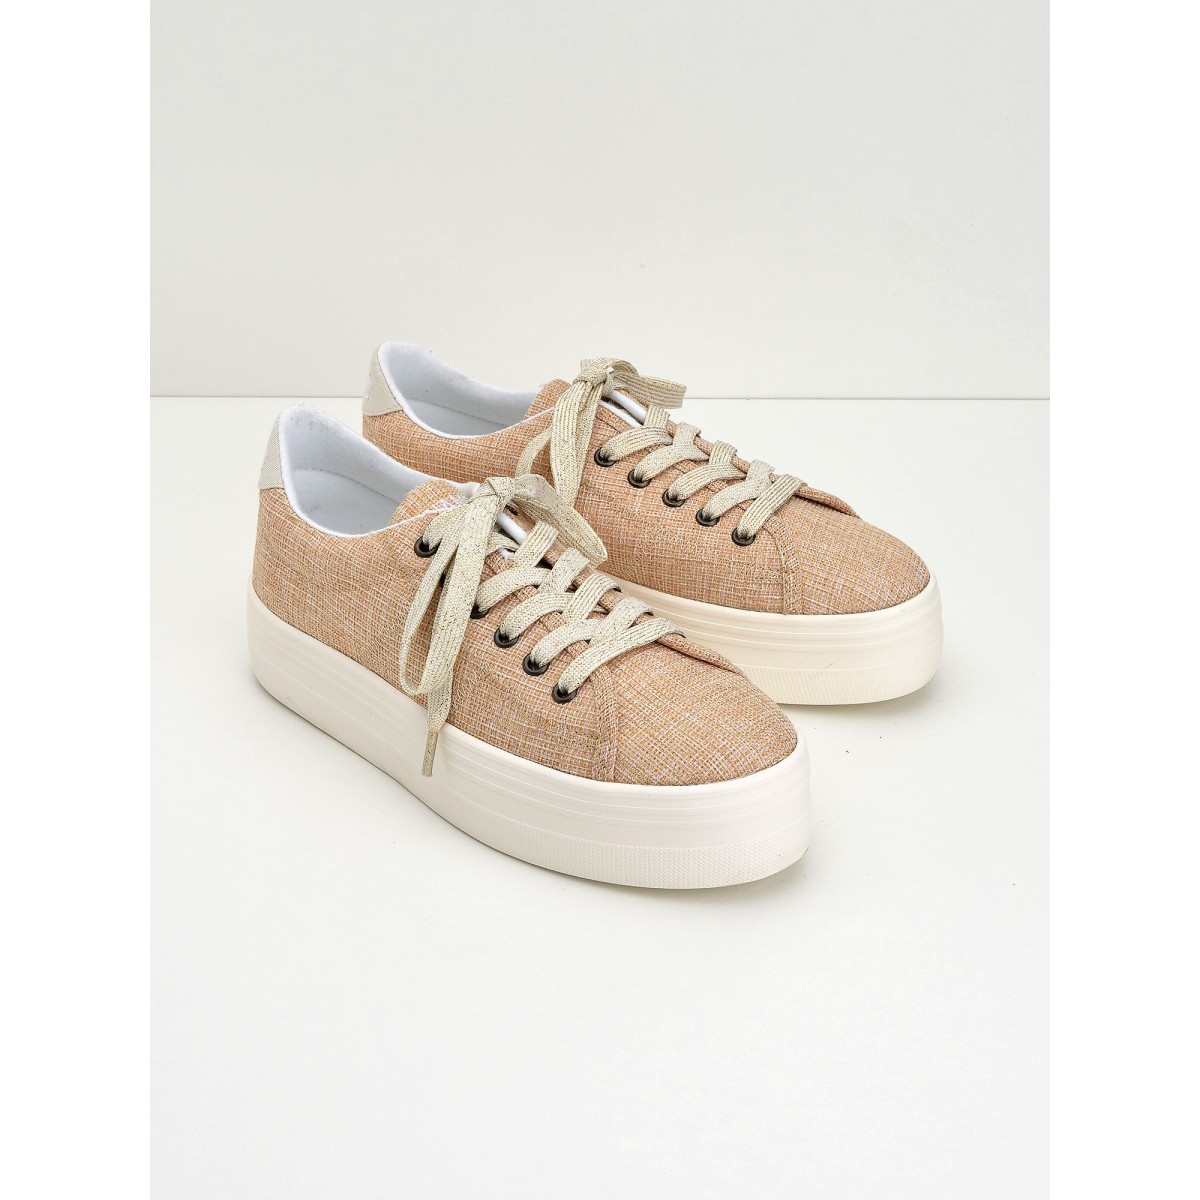 No Name Plato Sneaker - Fortune - Peach